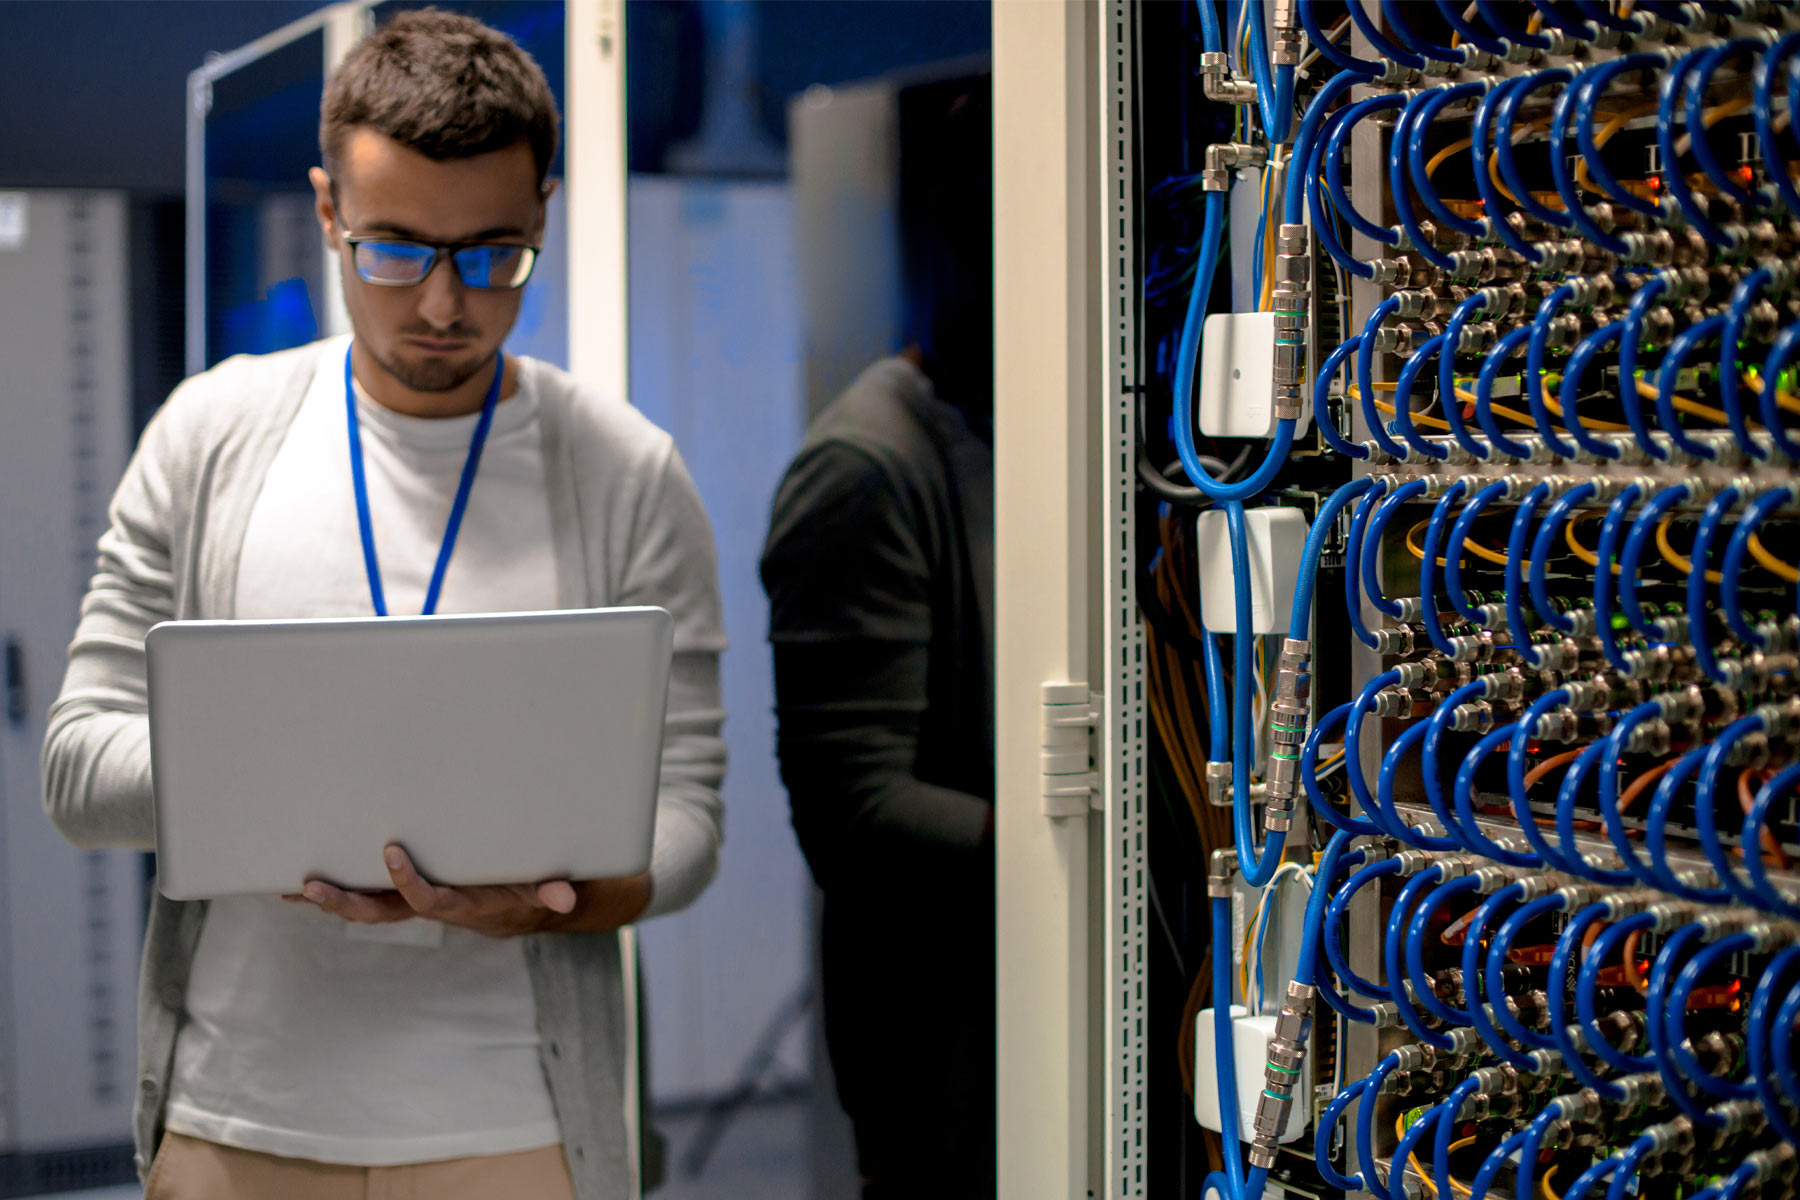 male employee using laptop next to servers